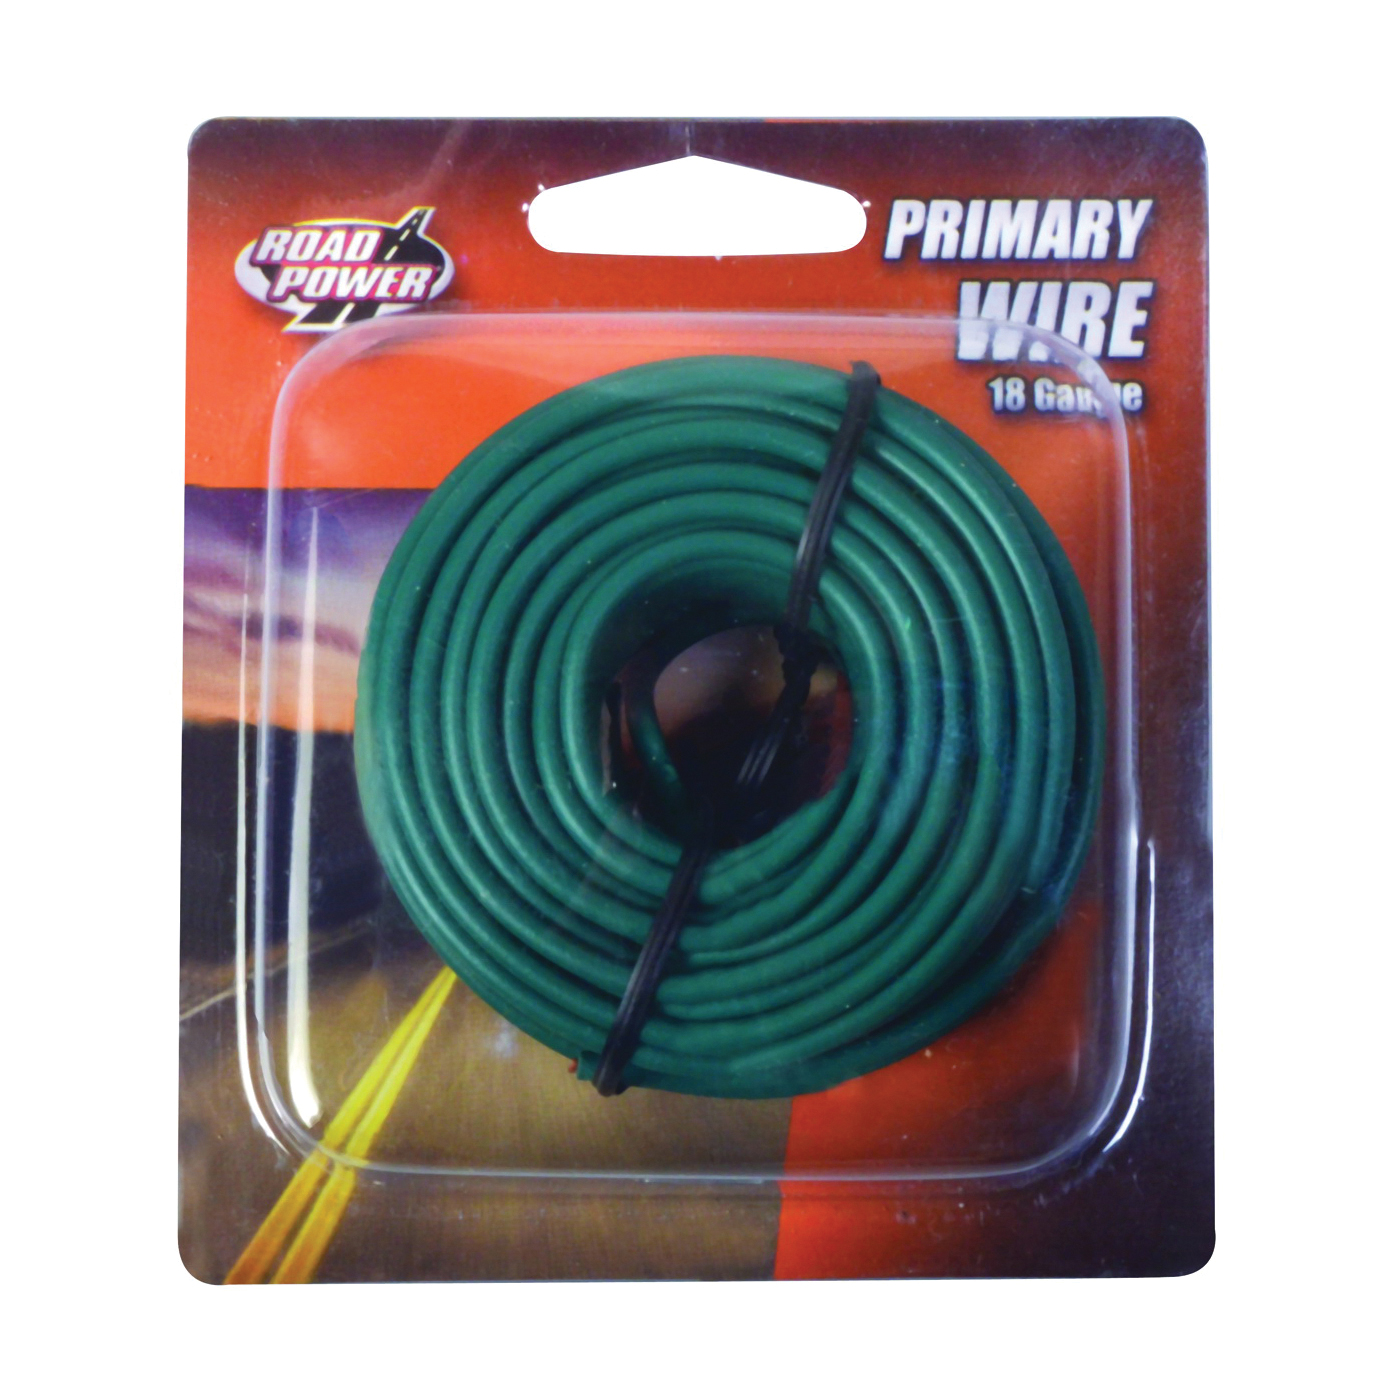 Picture of CCI Road Power 55835033/18-1-15 Electrical Wire, 18 AWG Wire, 25 VAC, 60 VDC, Copper Conductor, Green Sheath